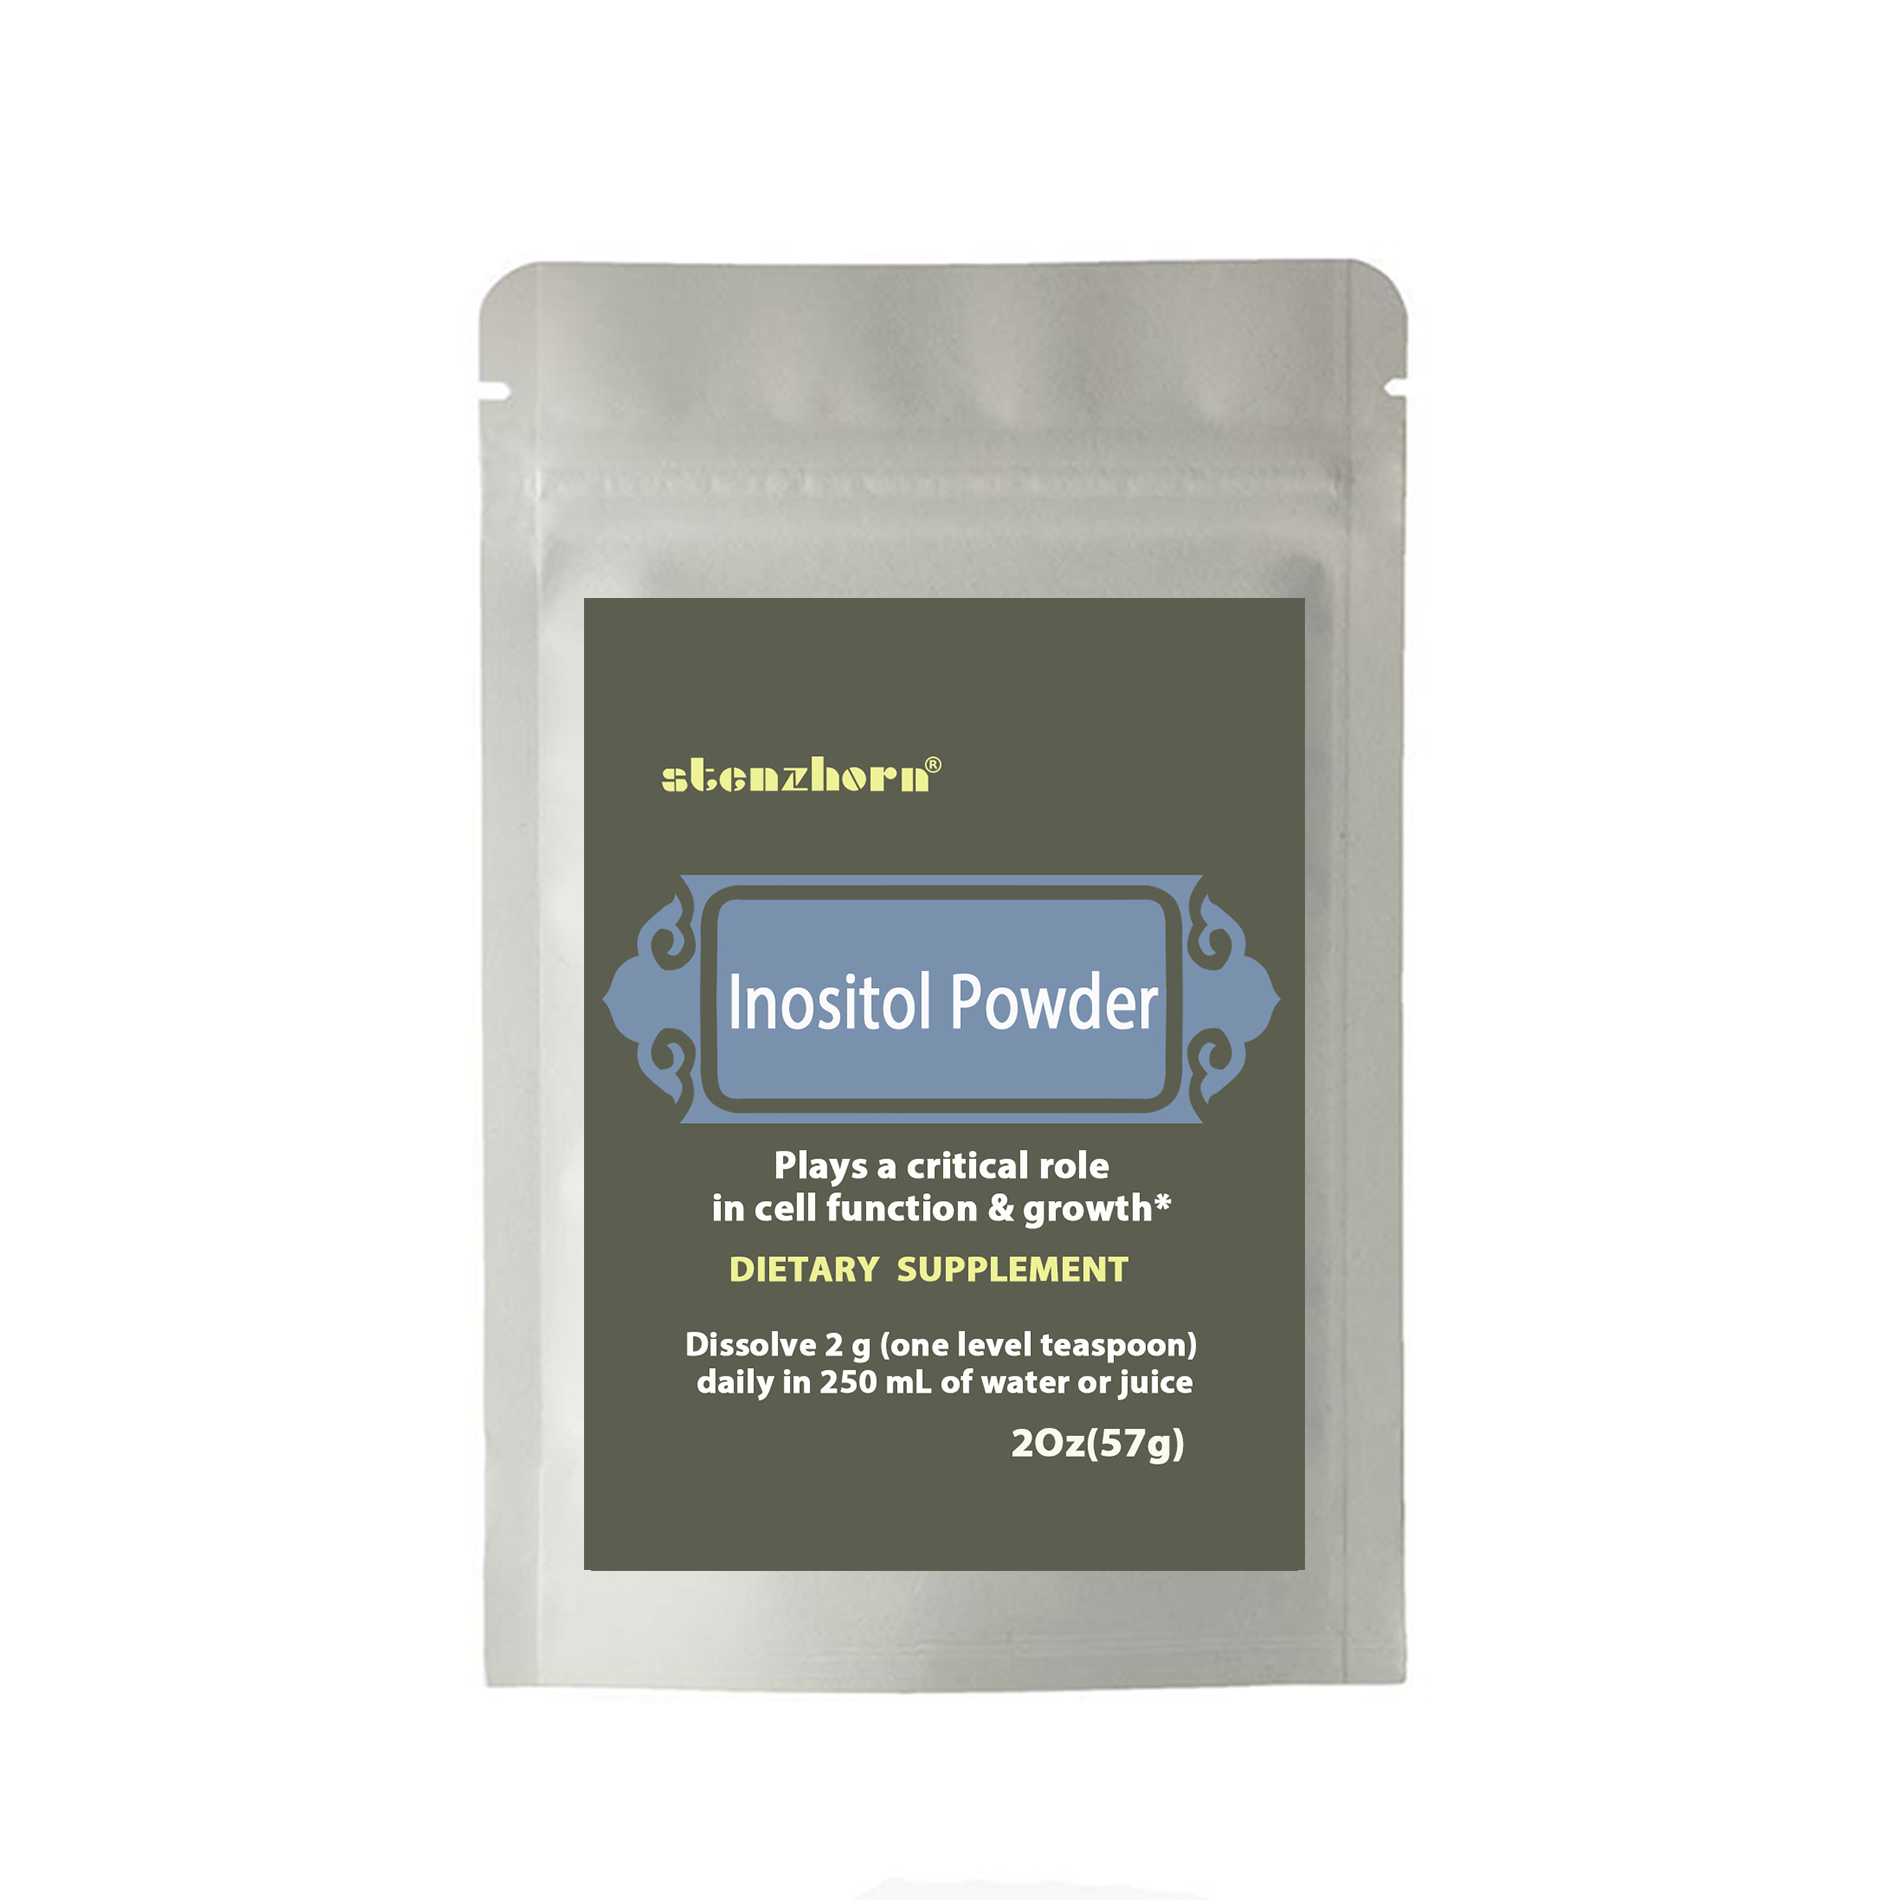 Inositol Powder 2Oz Plays a critical role in cell function & growth*